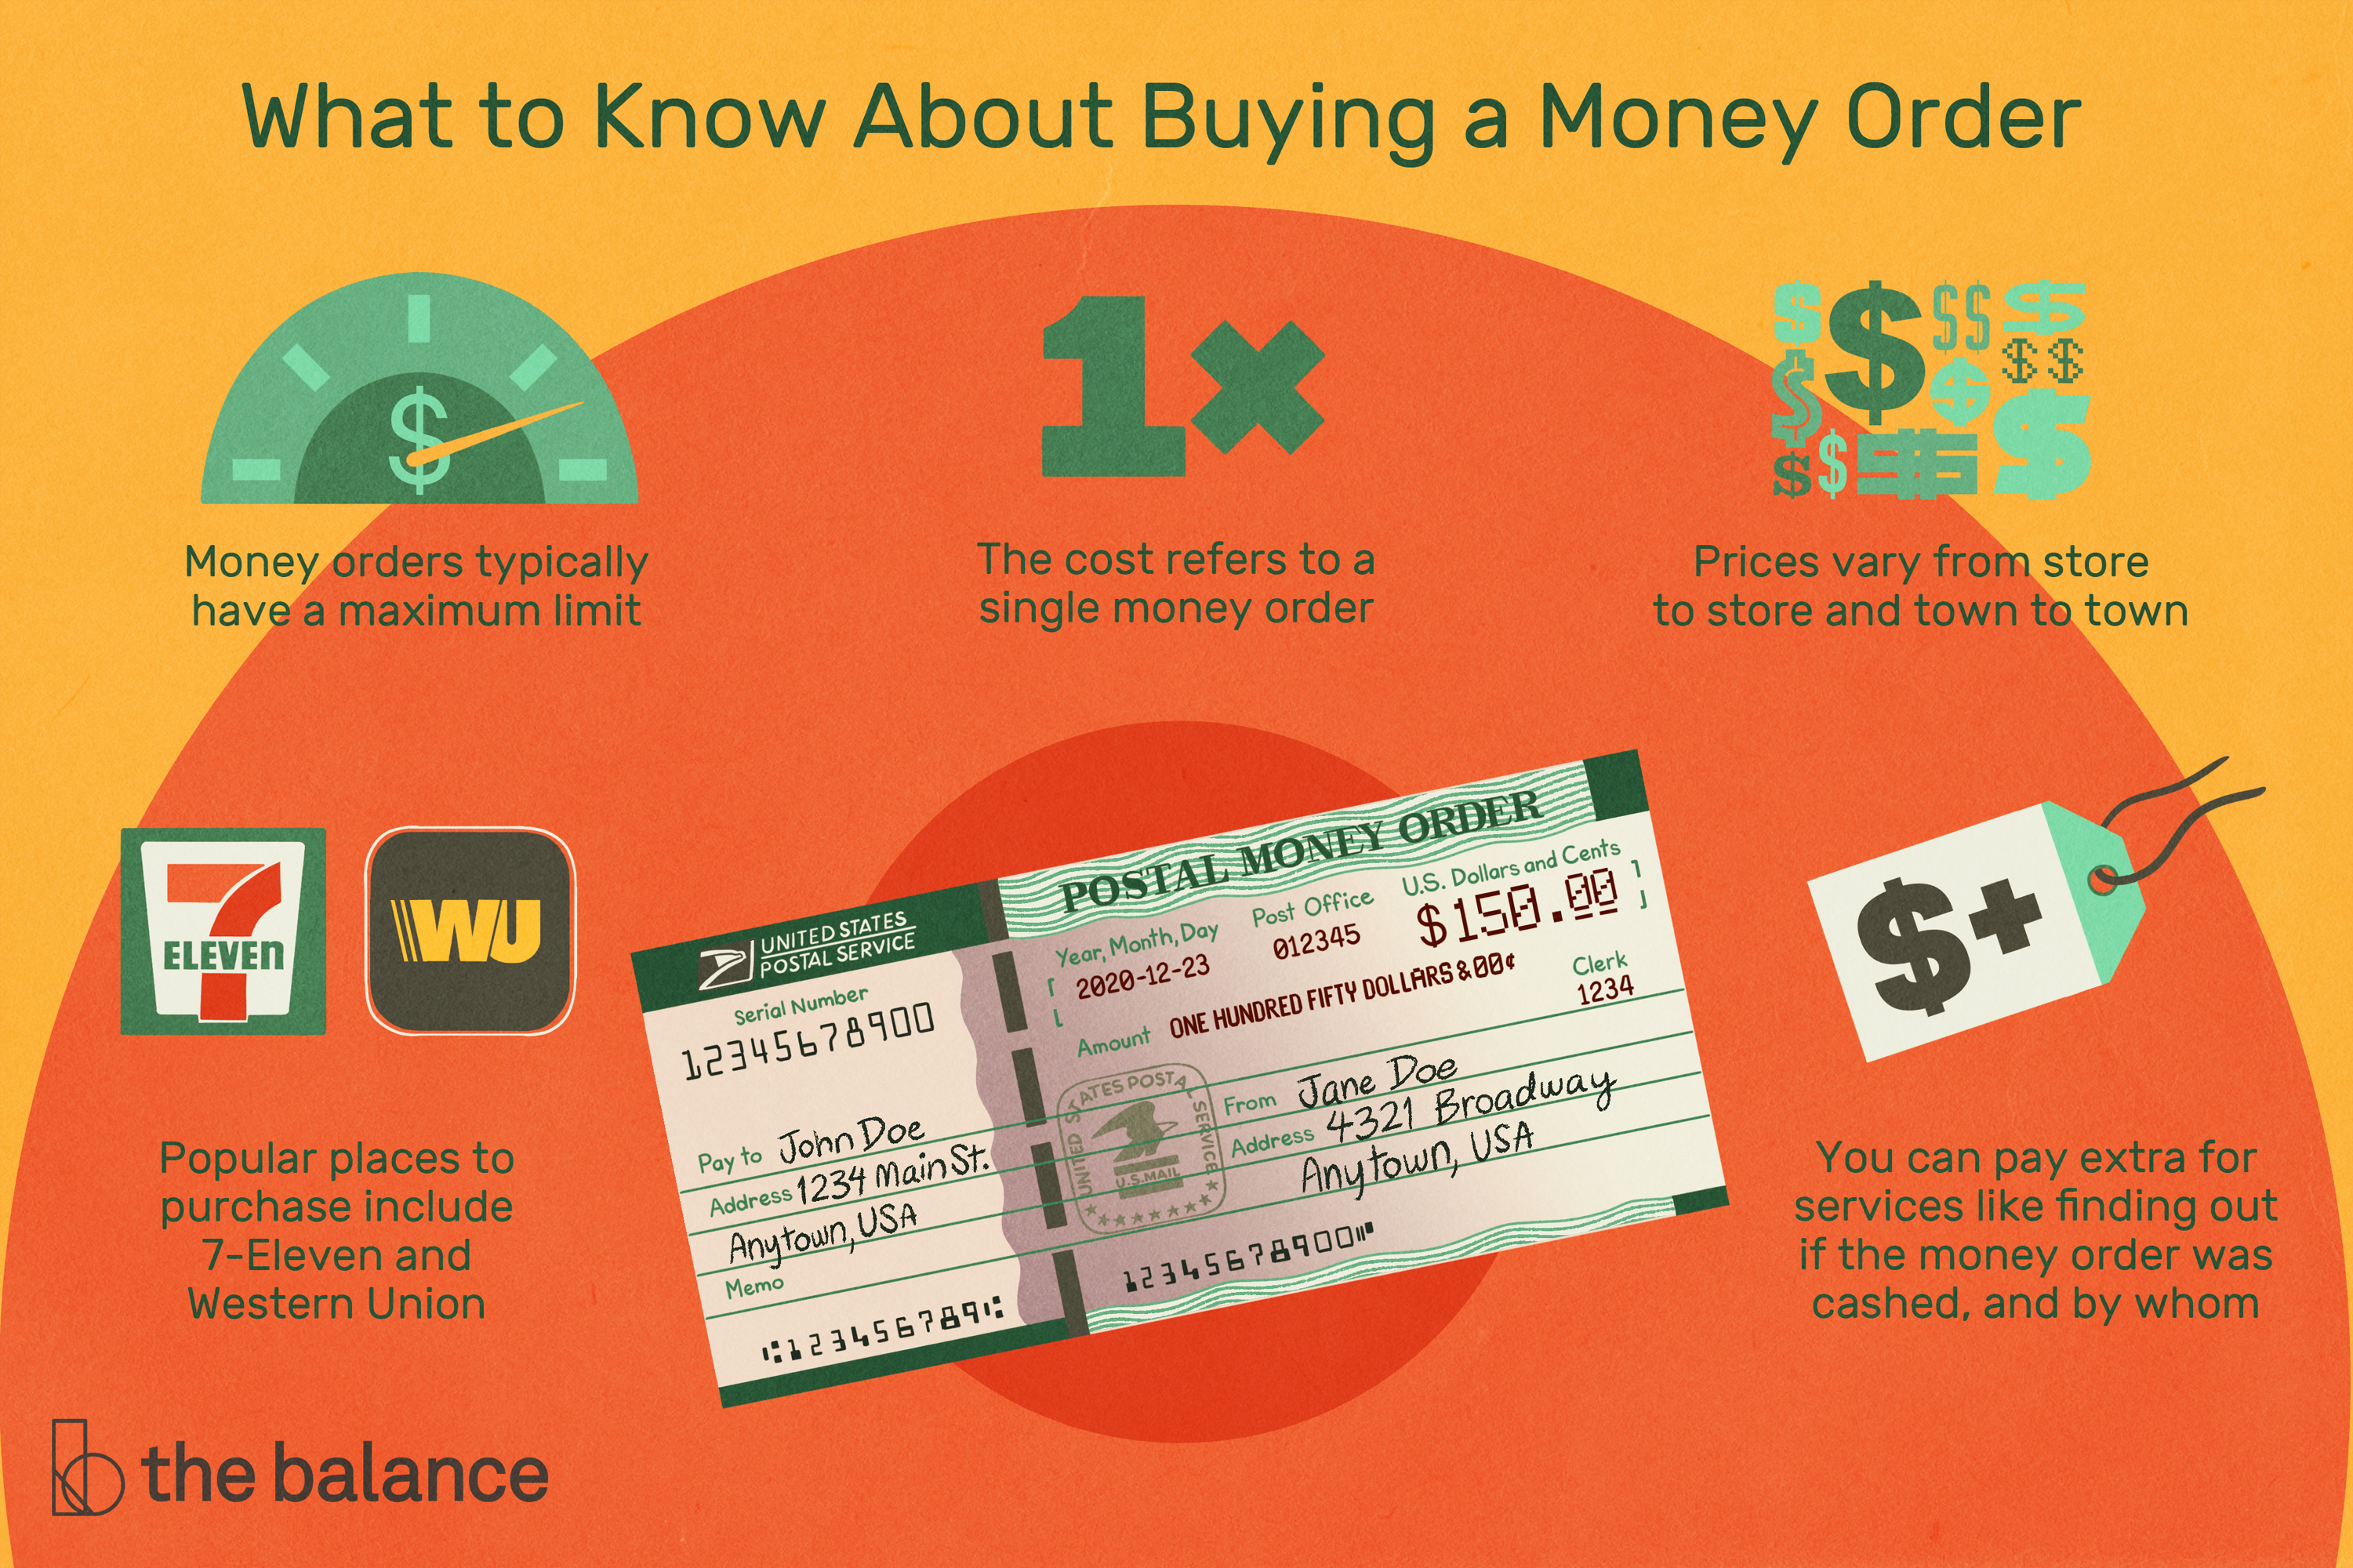 Get The Most Bang For Your Buck With A Money Order